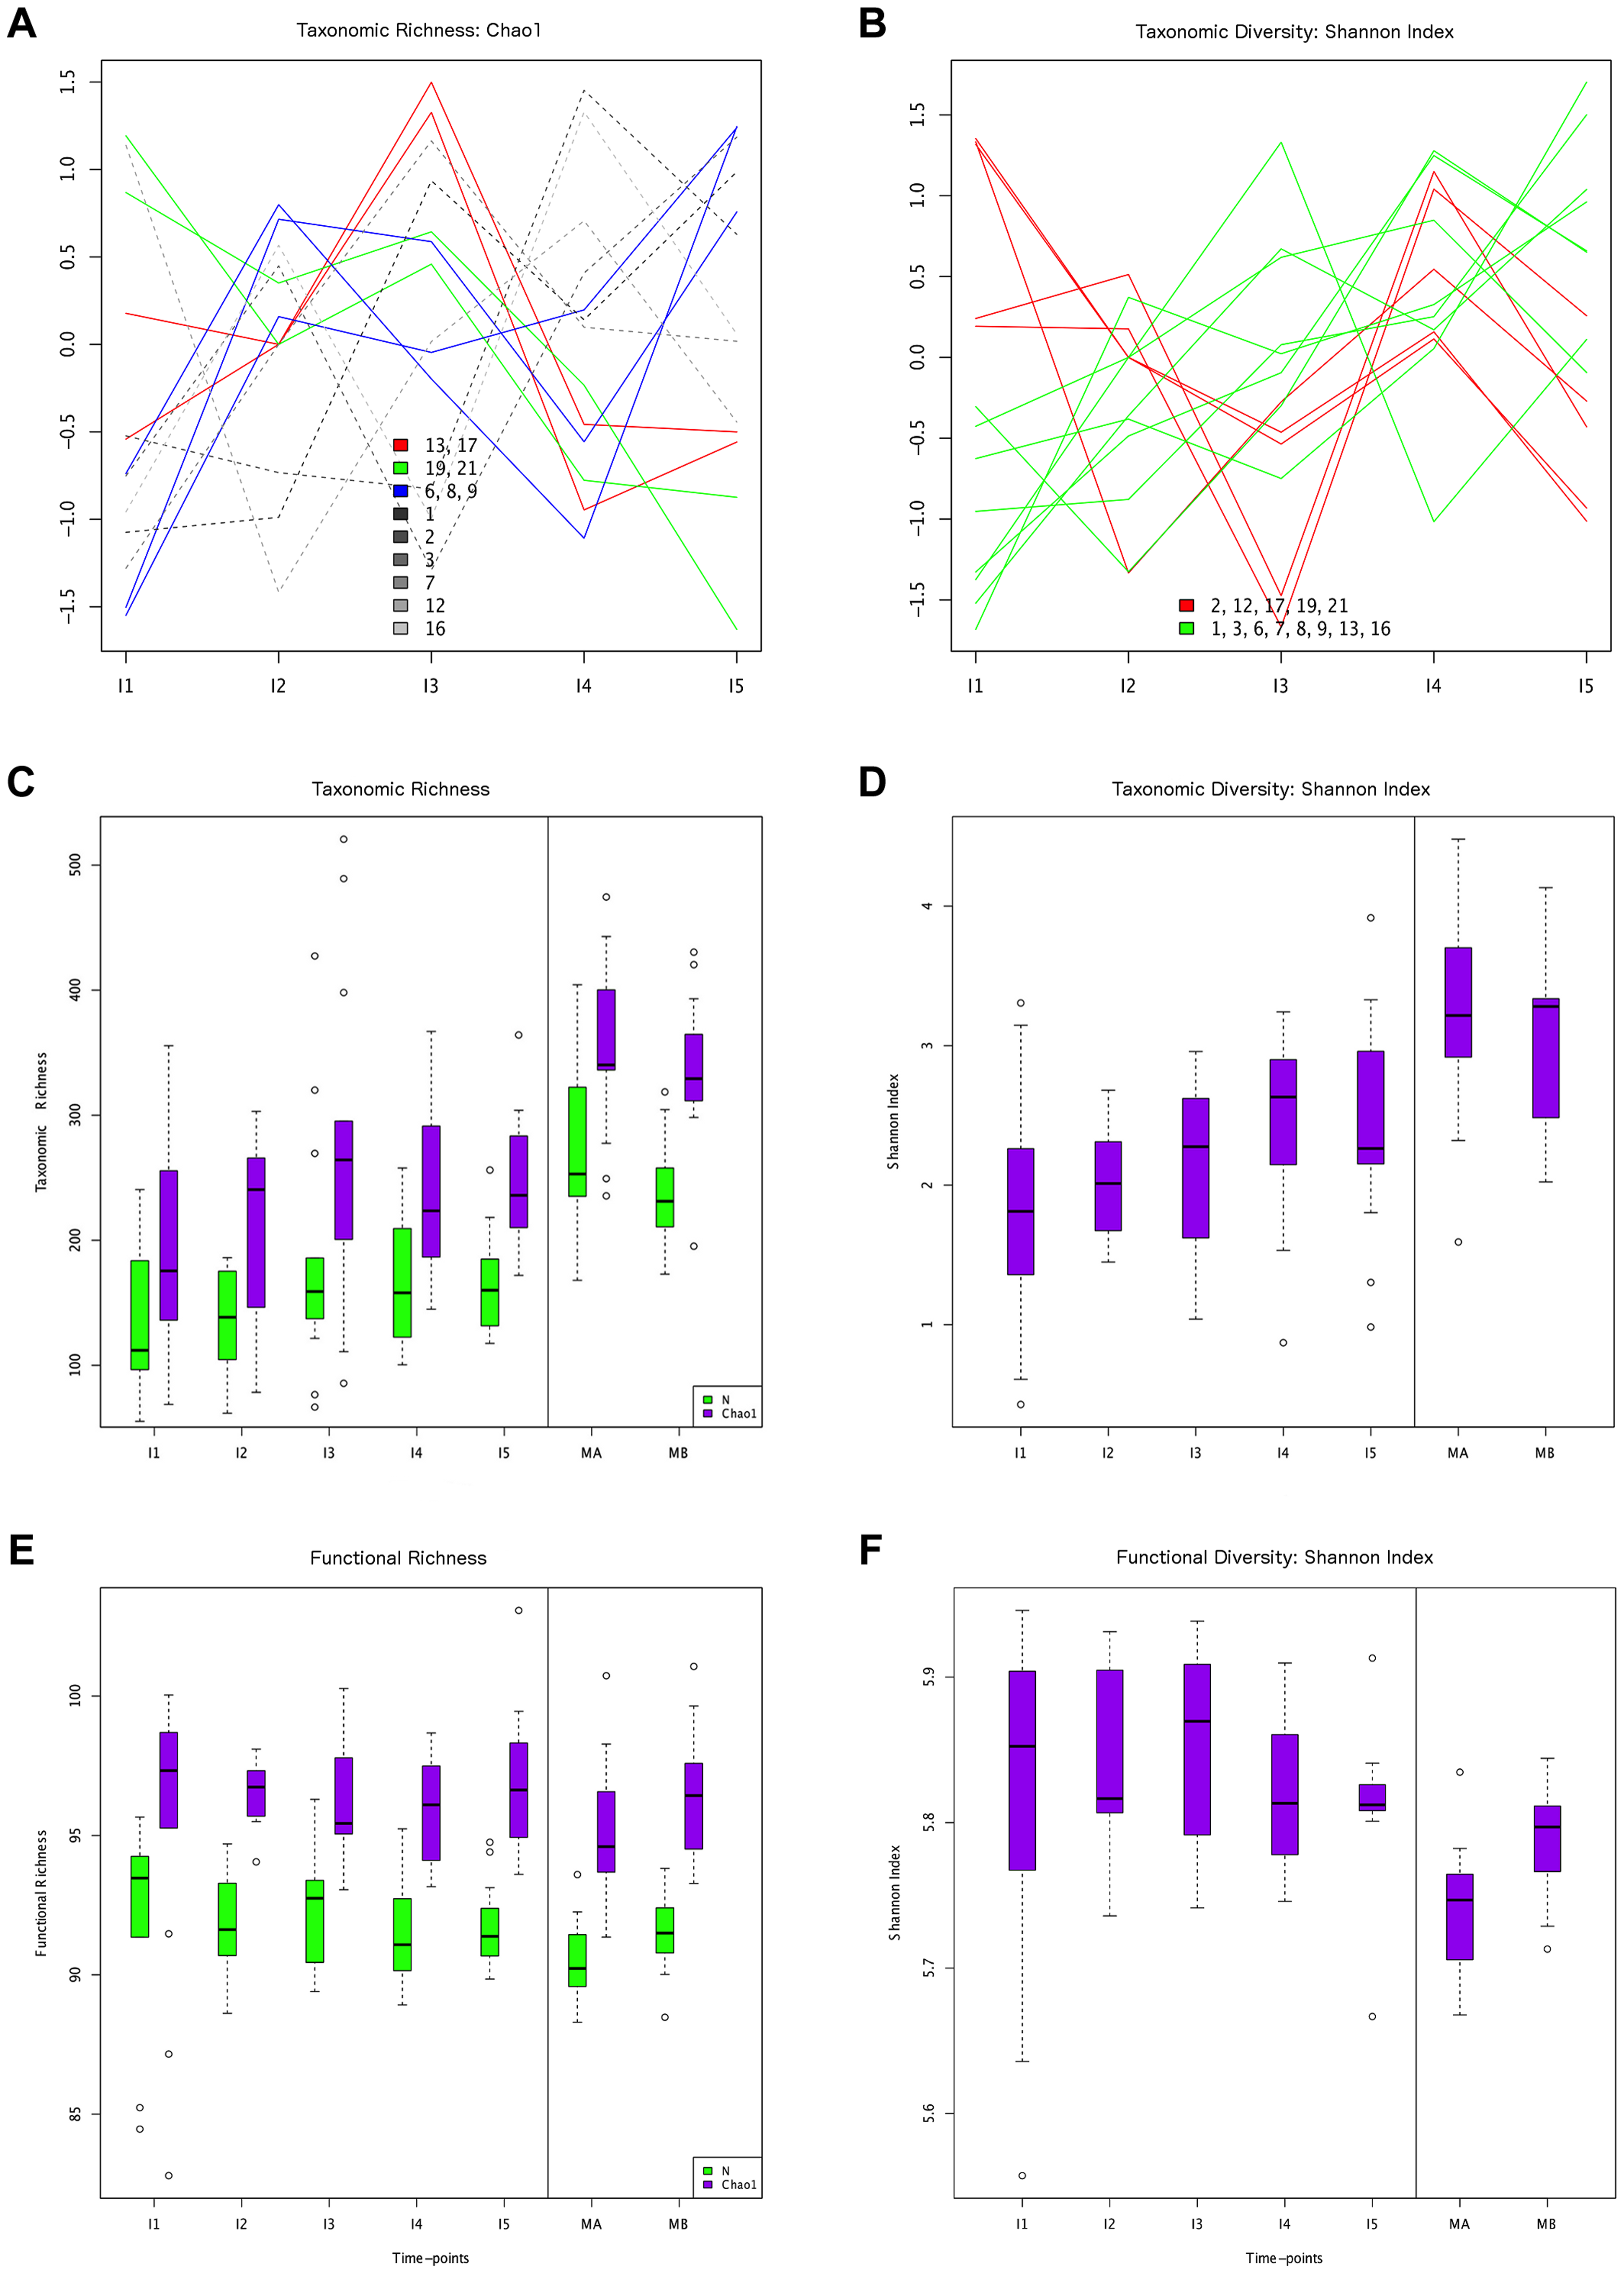 Different behaviors of taxonomic and functional richness and diversity through infant gut microbiota development.